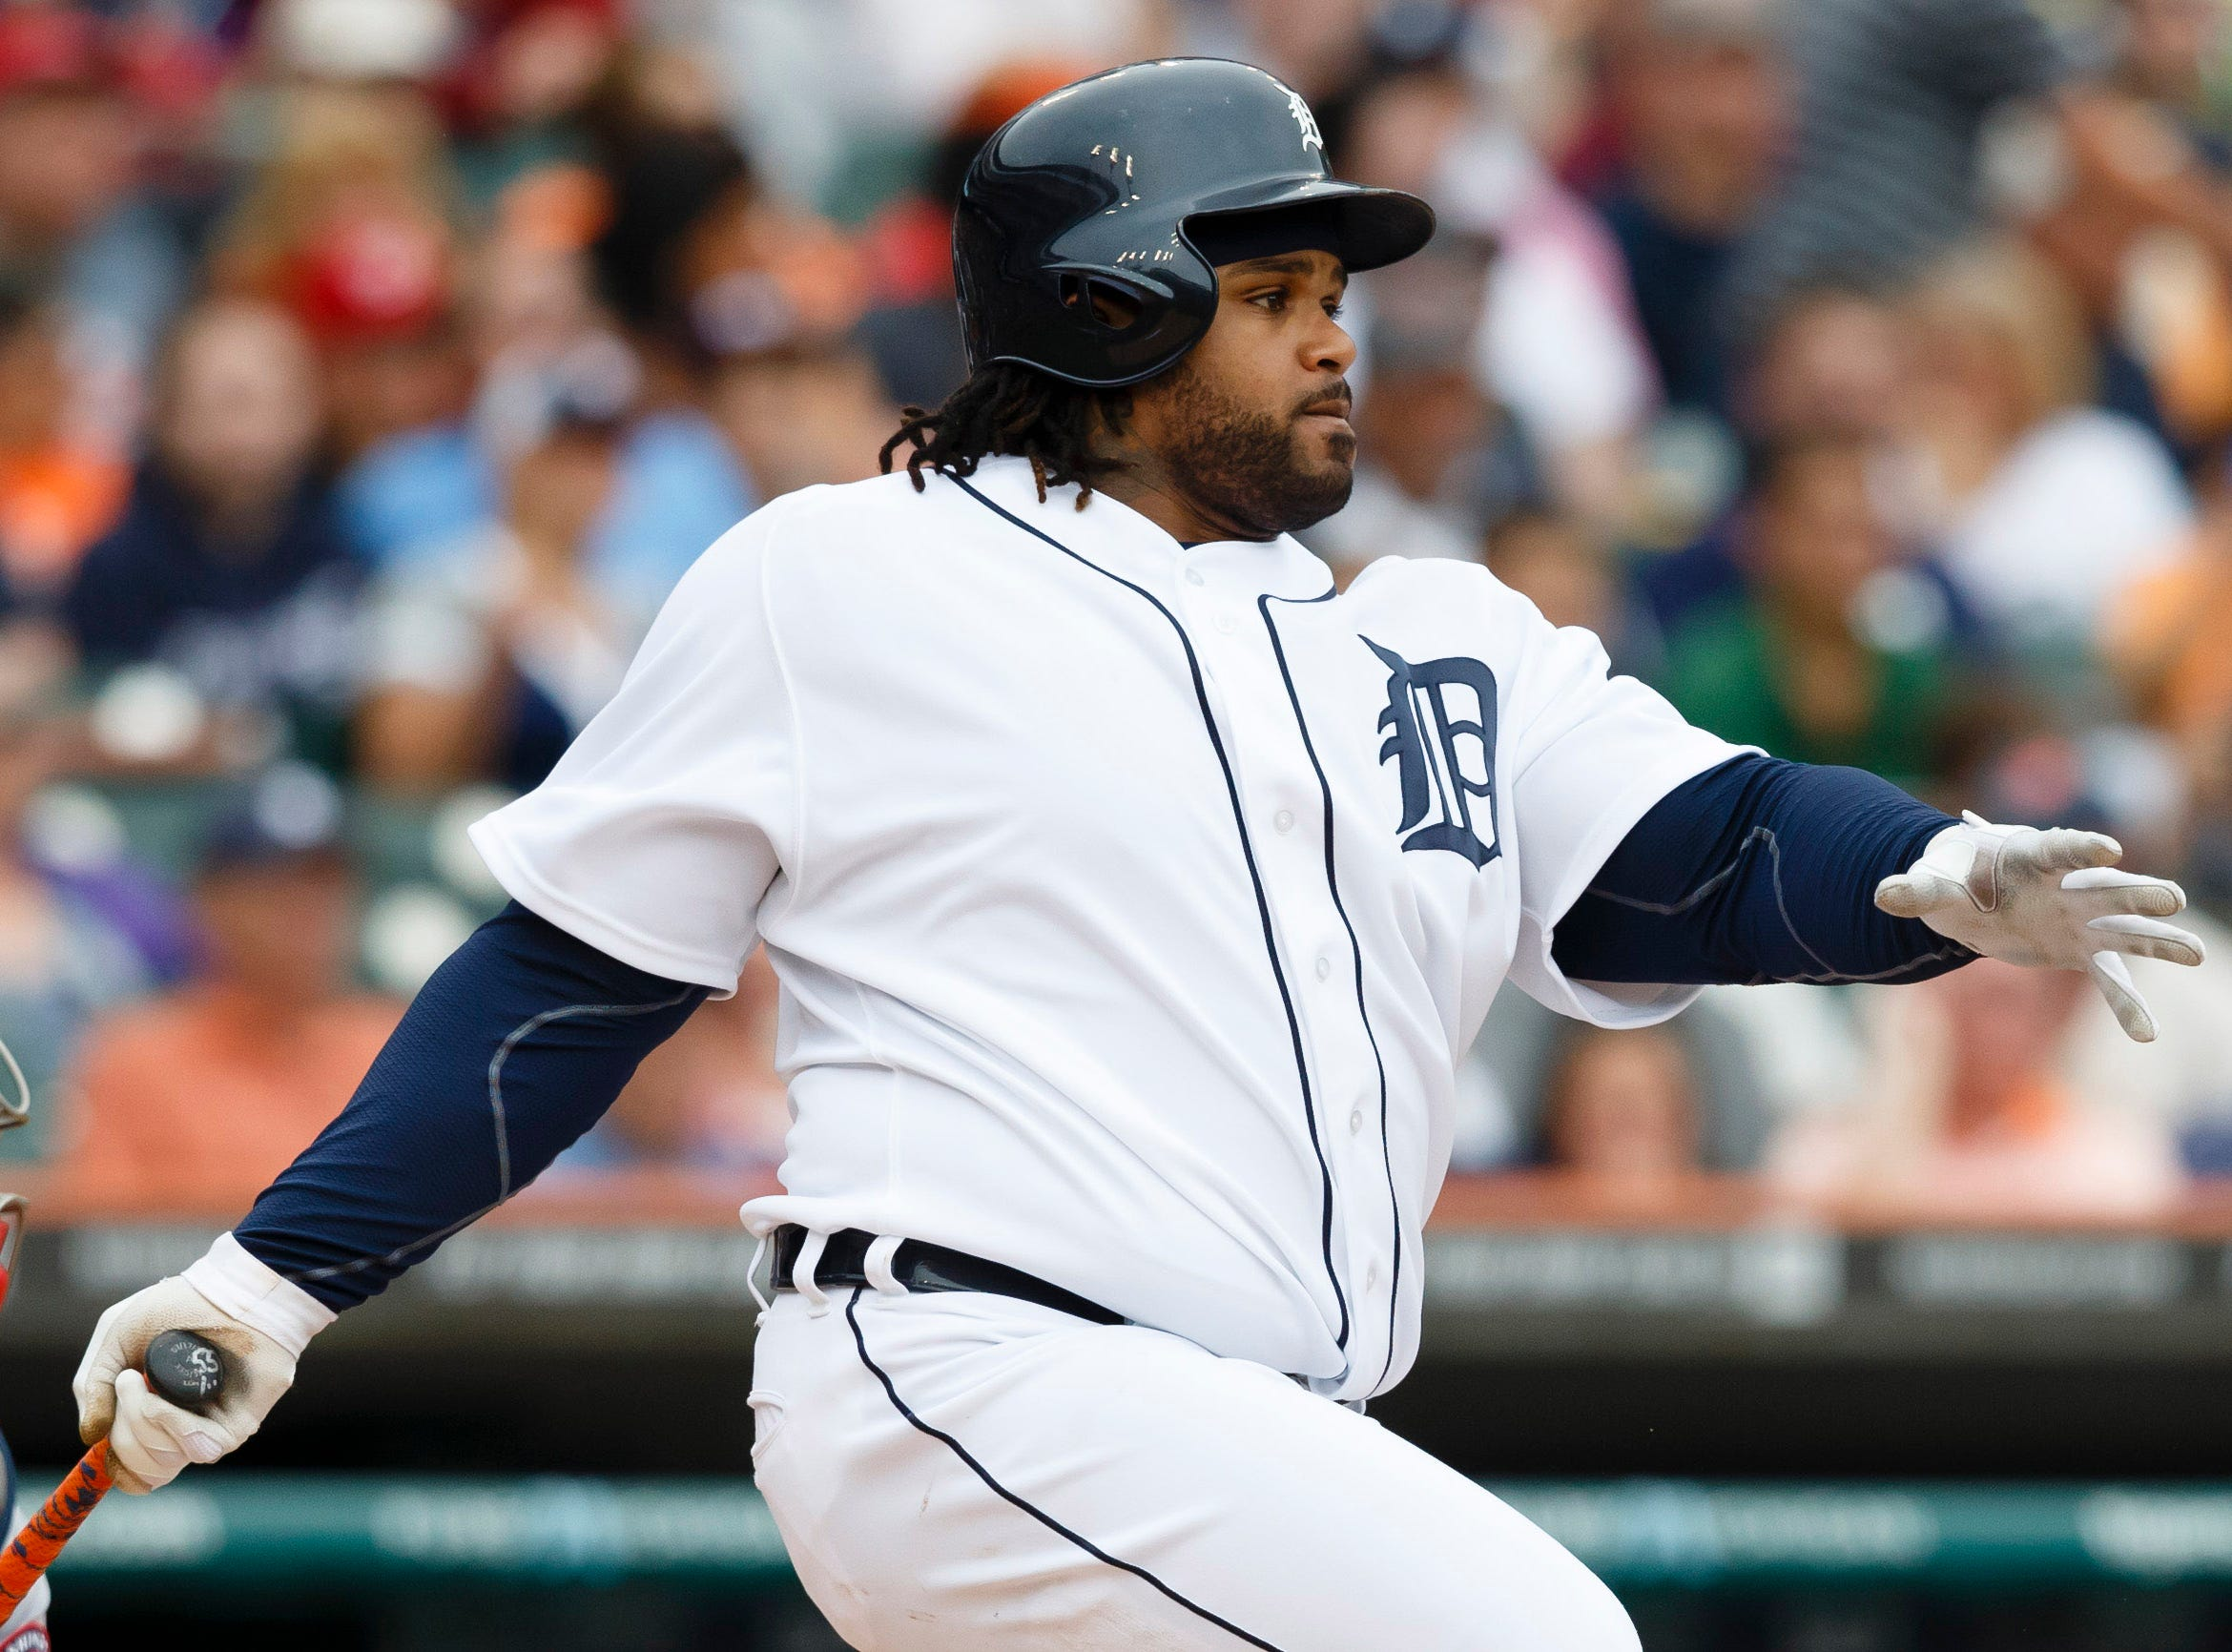 $214 million: Prince Fielder, Tigers (2012-2020) – traded to Rangers in 2013